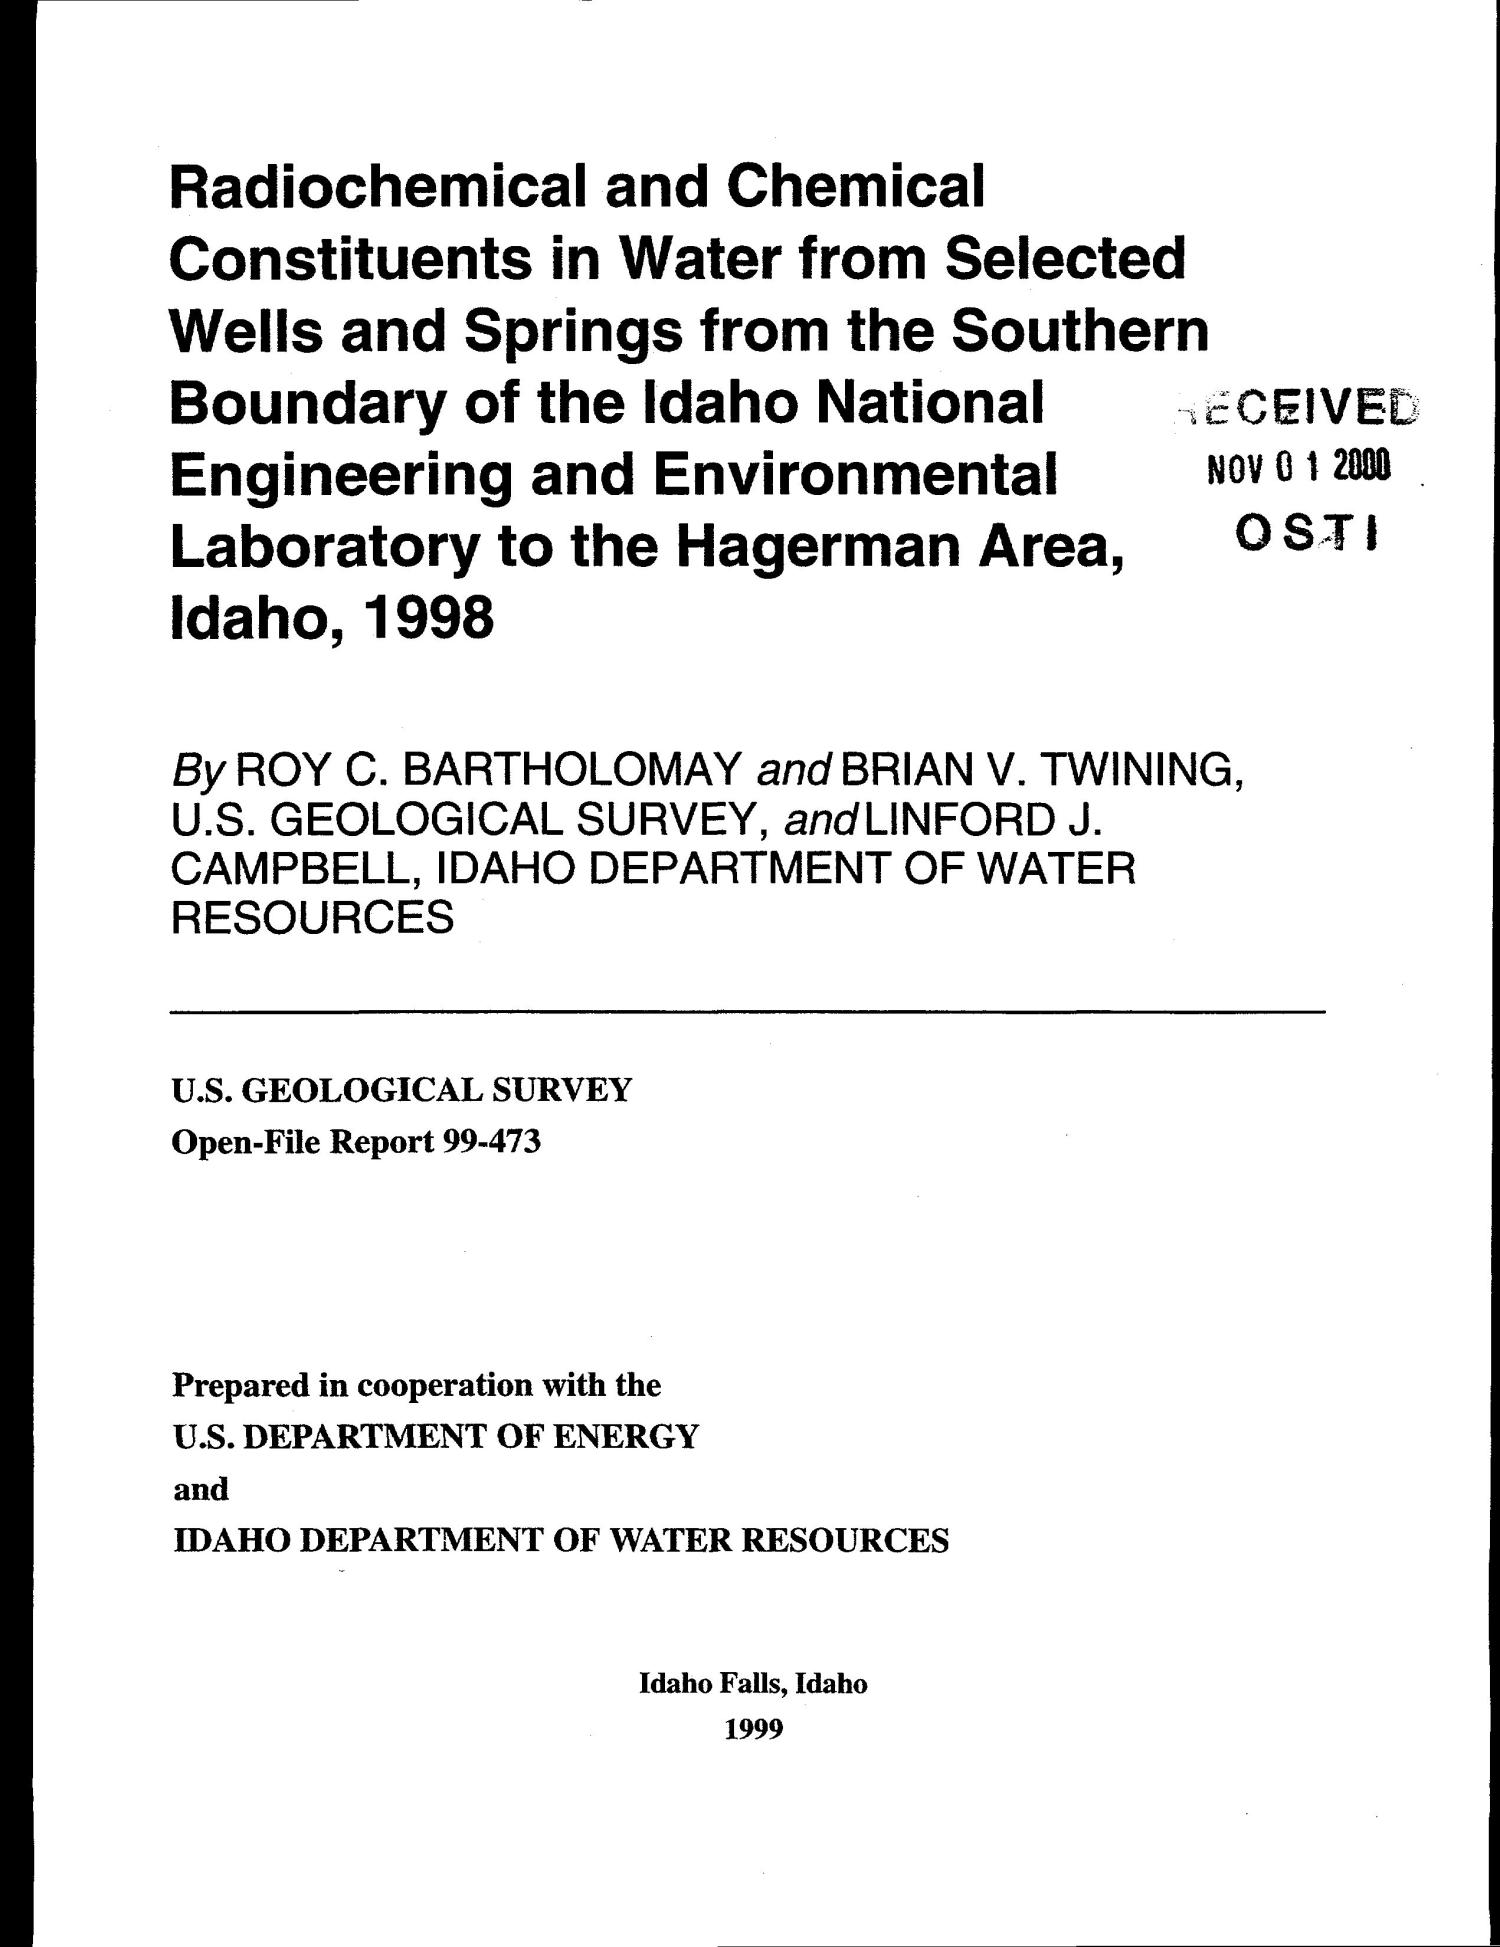 Radiochemical and Chemical Constituents in Water from Selected Wells and Springs from the Southern Boundary of the Idaho National Engineering and Environmental Laboratory to the Hagerman Area, Idaho, 1998                                                                                                      [Sequence #]: 1 of 34